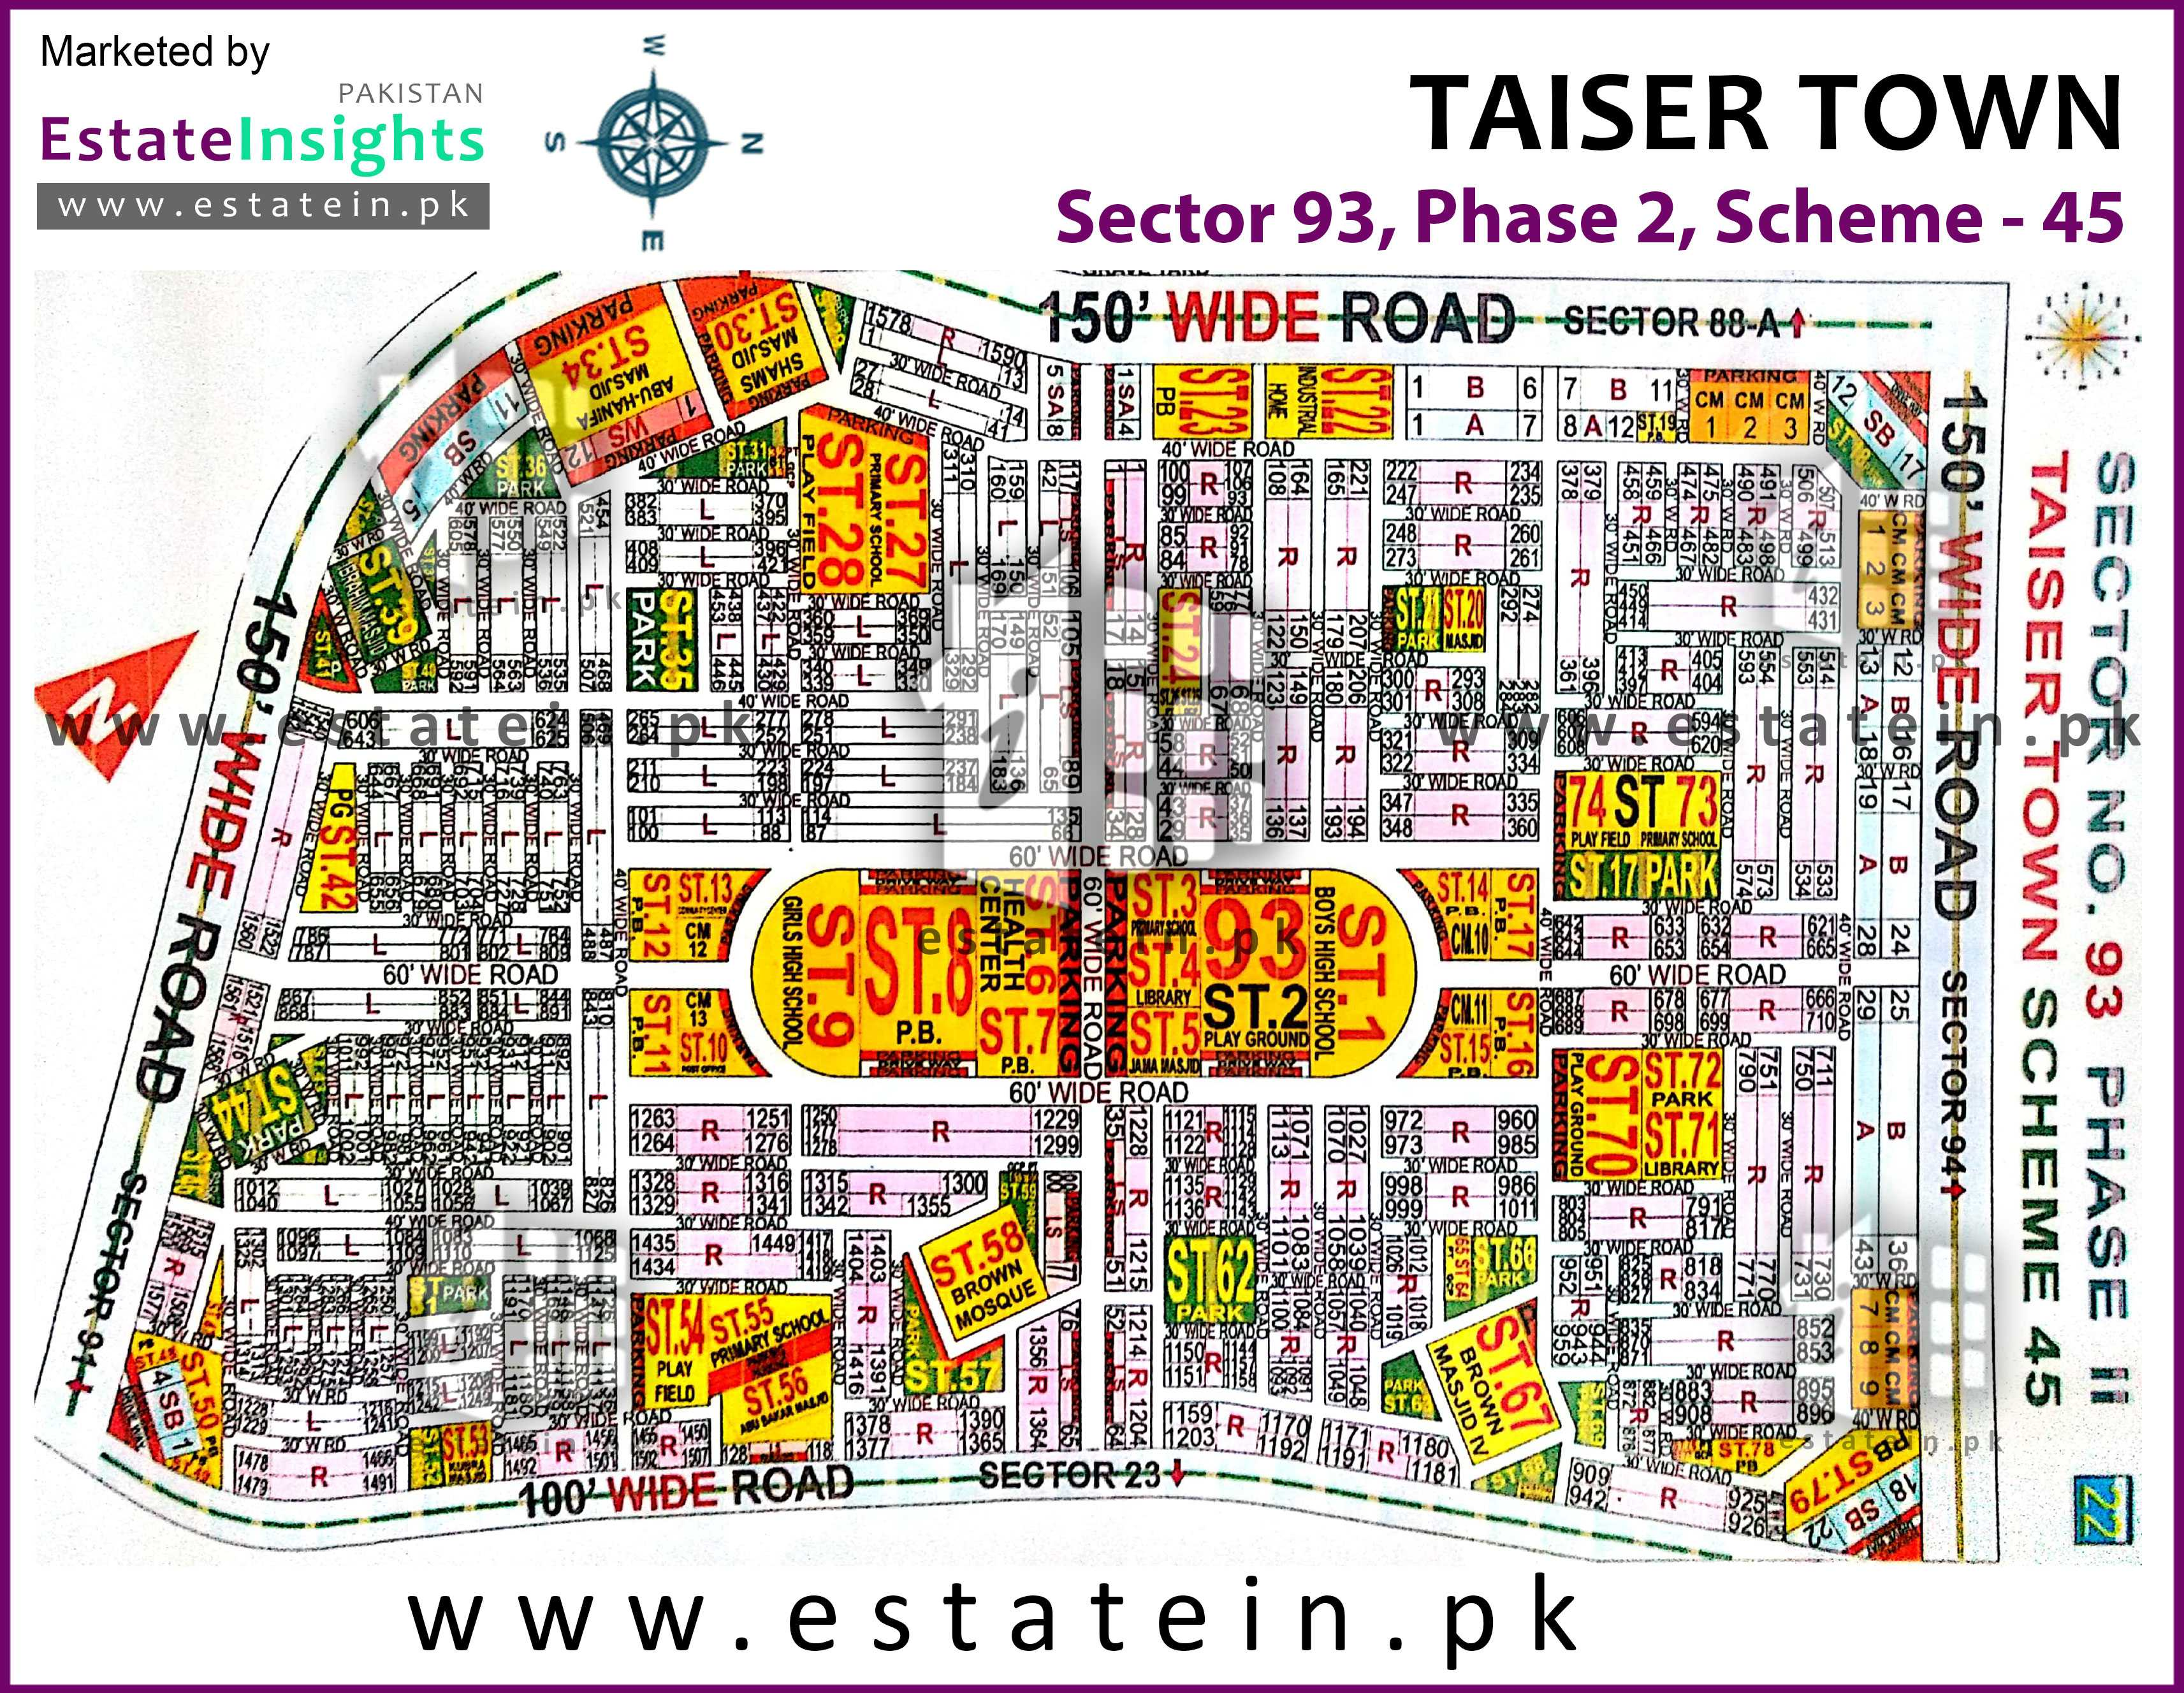 Site Plan of Sector 93 of Taiser Town Phase II